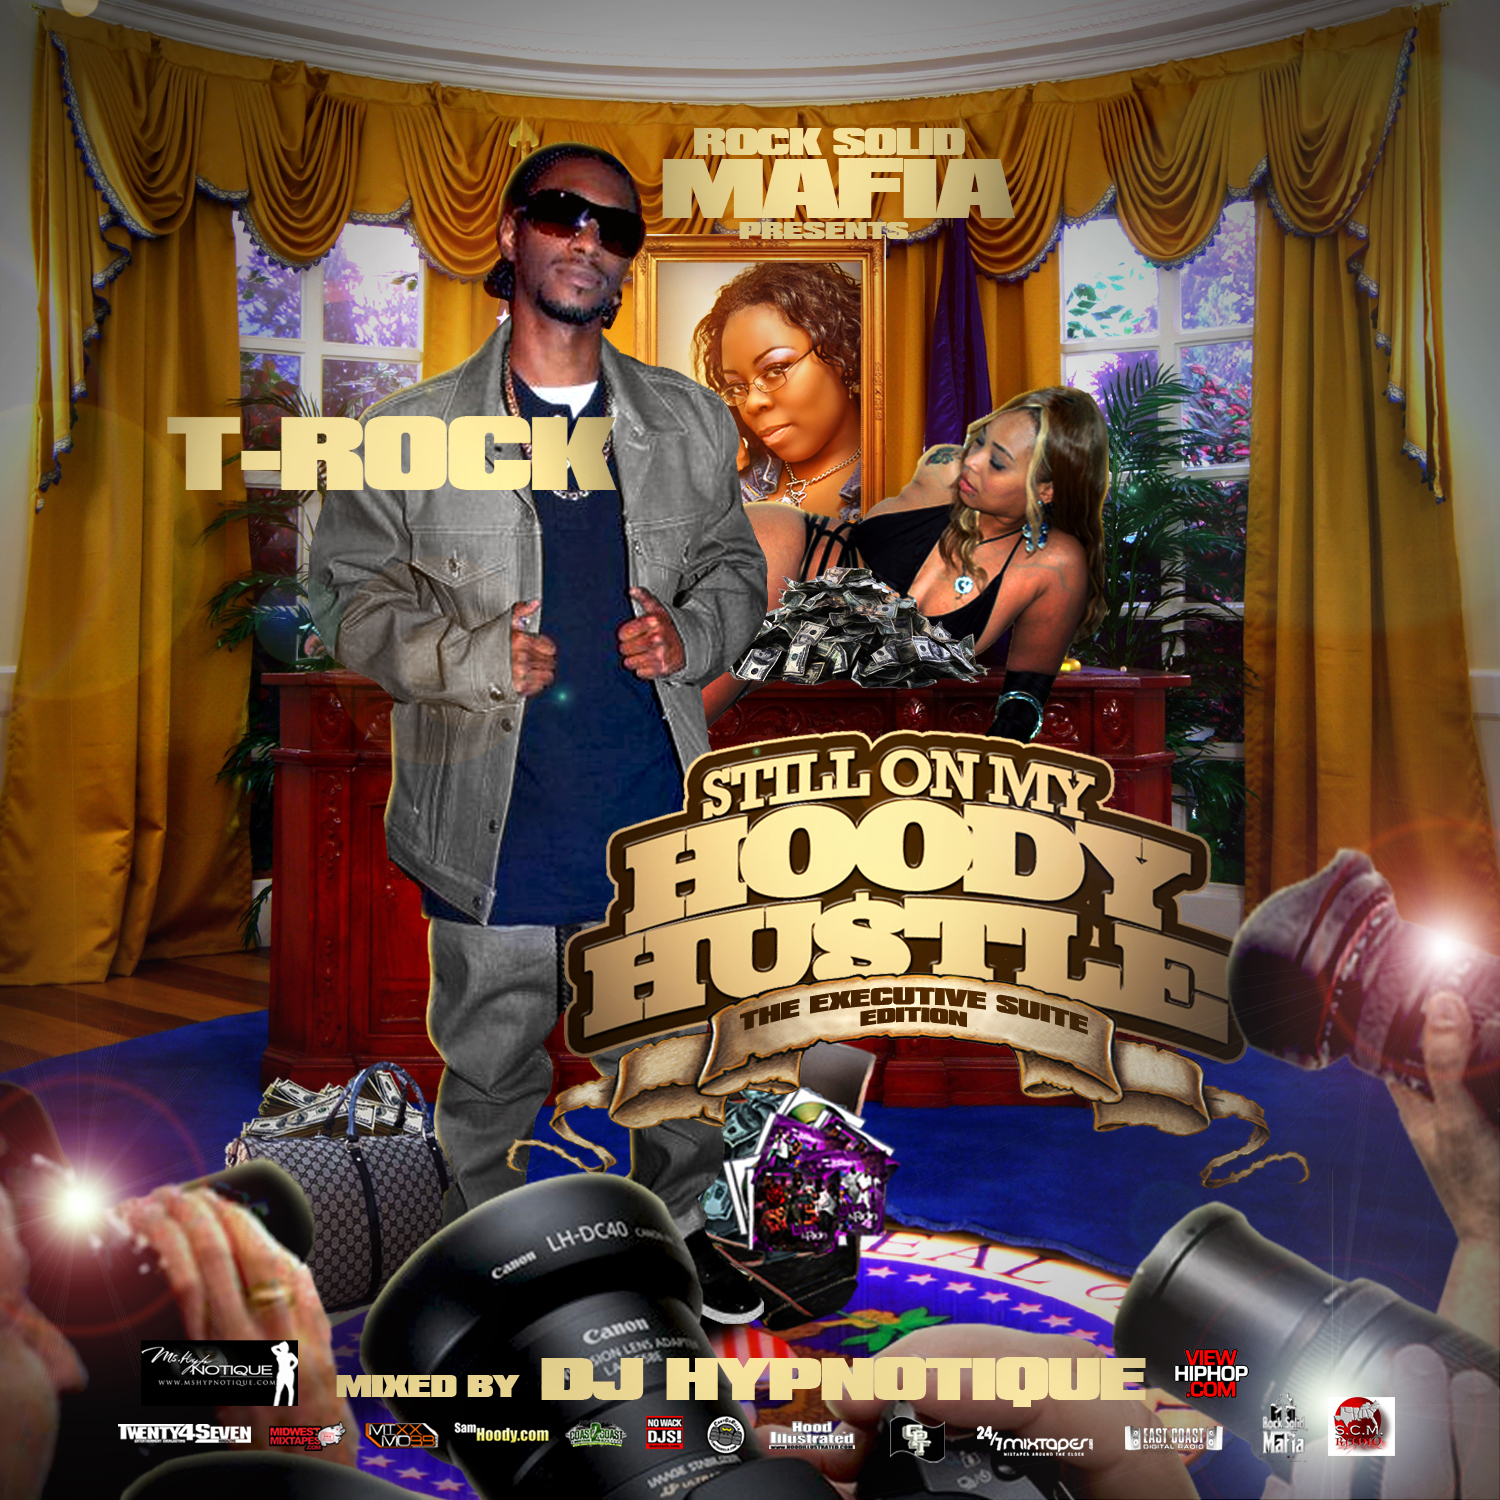 T-Rock - Still On My Hoody Hustle (The Executive Suite Edition)